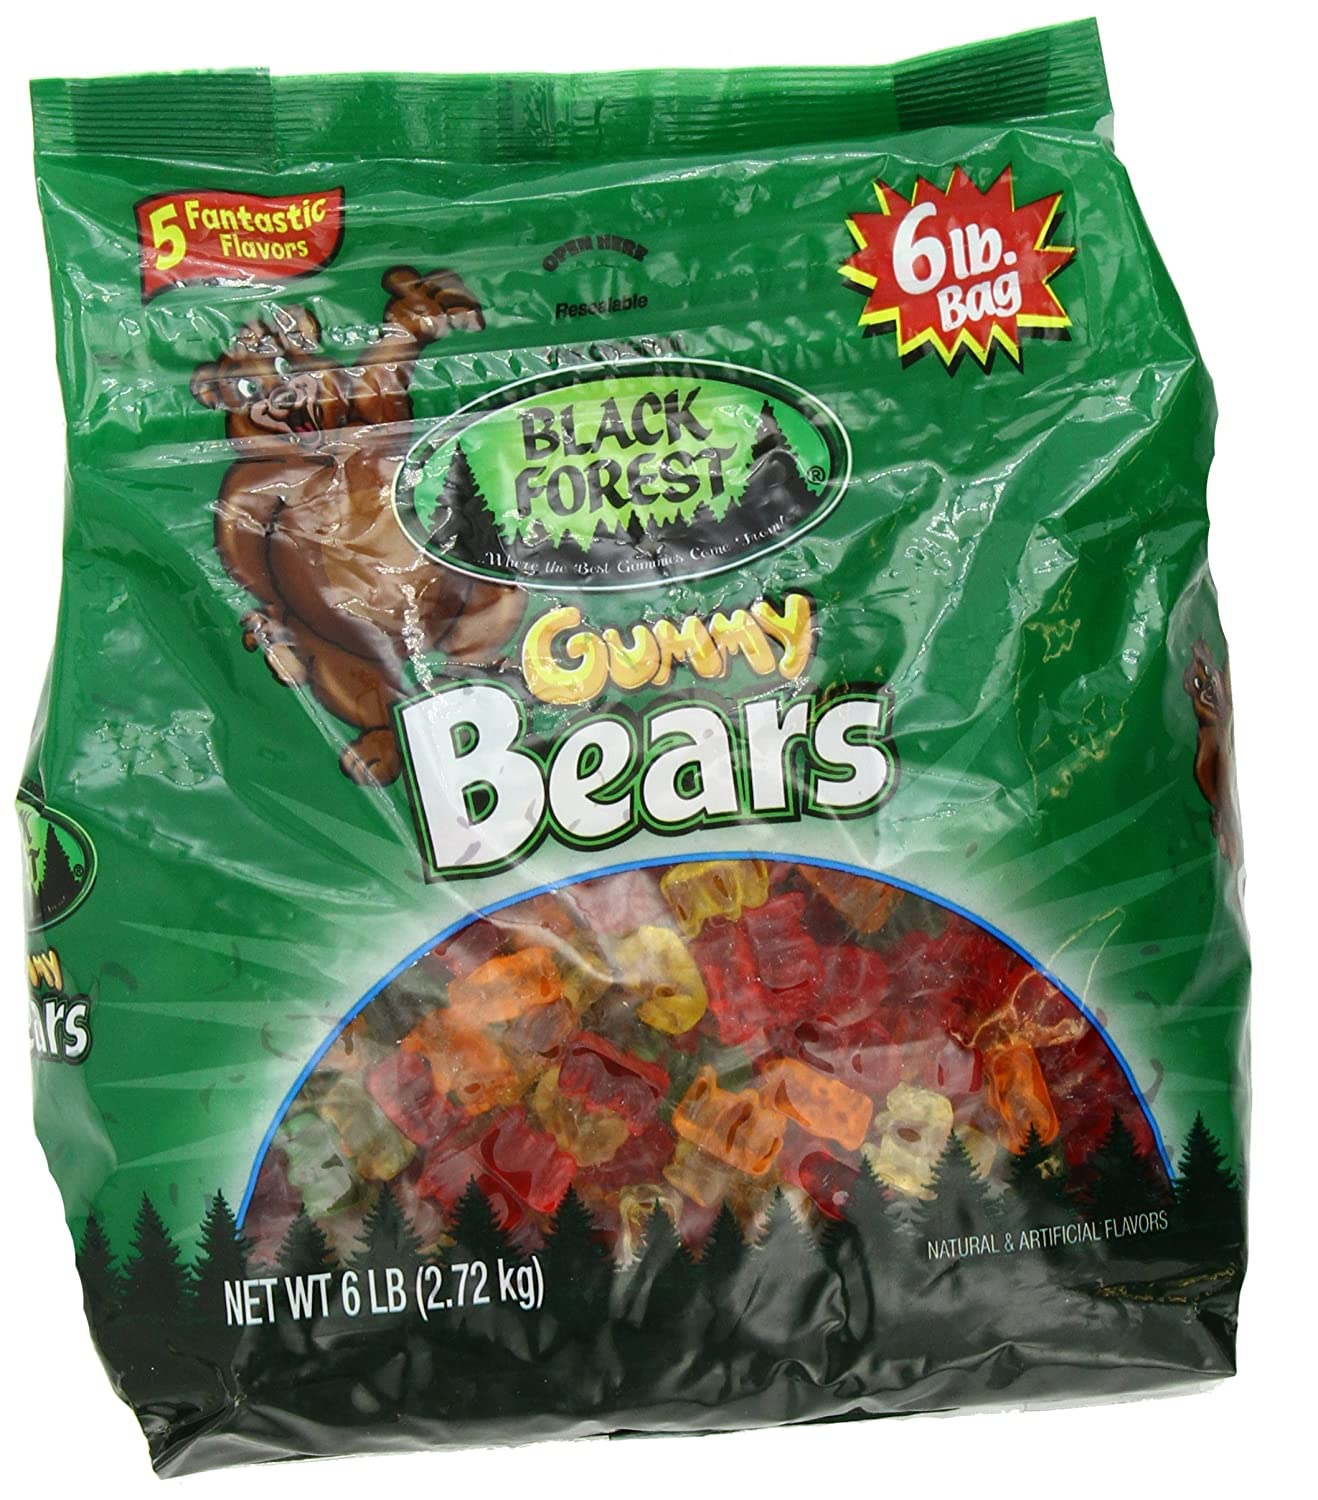 Black Forest Gummy Bears Ferrara Natural and Artificial Flavors 6lbs